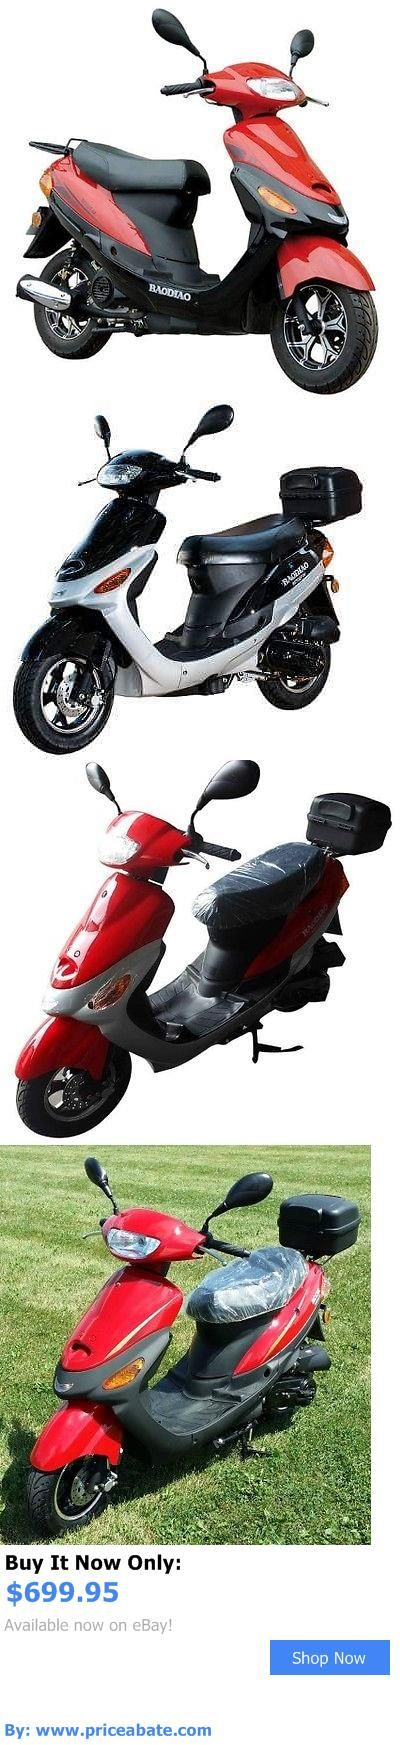 motorcycles And scooters: 50Cc 4 Stroke Boom Moped Scooter BUY IT NOW ONLY: $699.95 #priceabatemotorcyclesAndscooters OR #priceabate